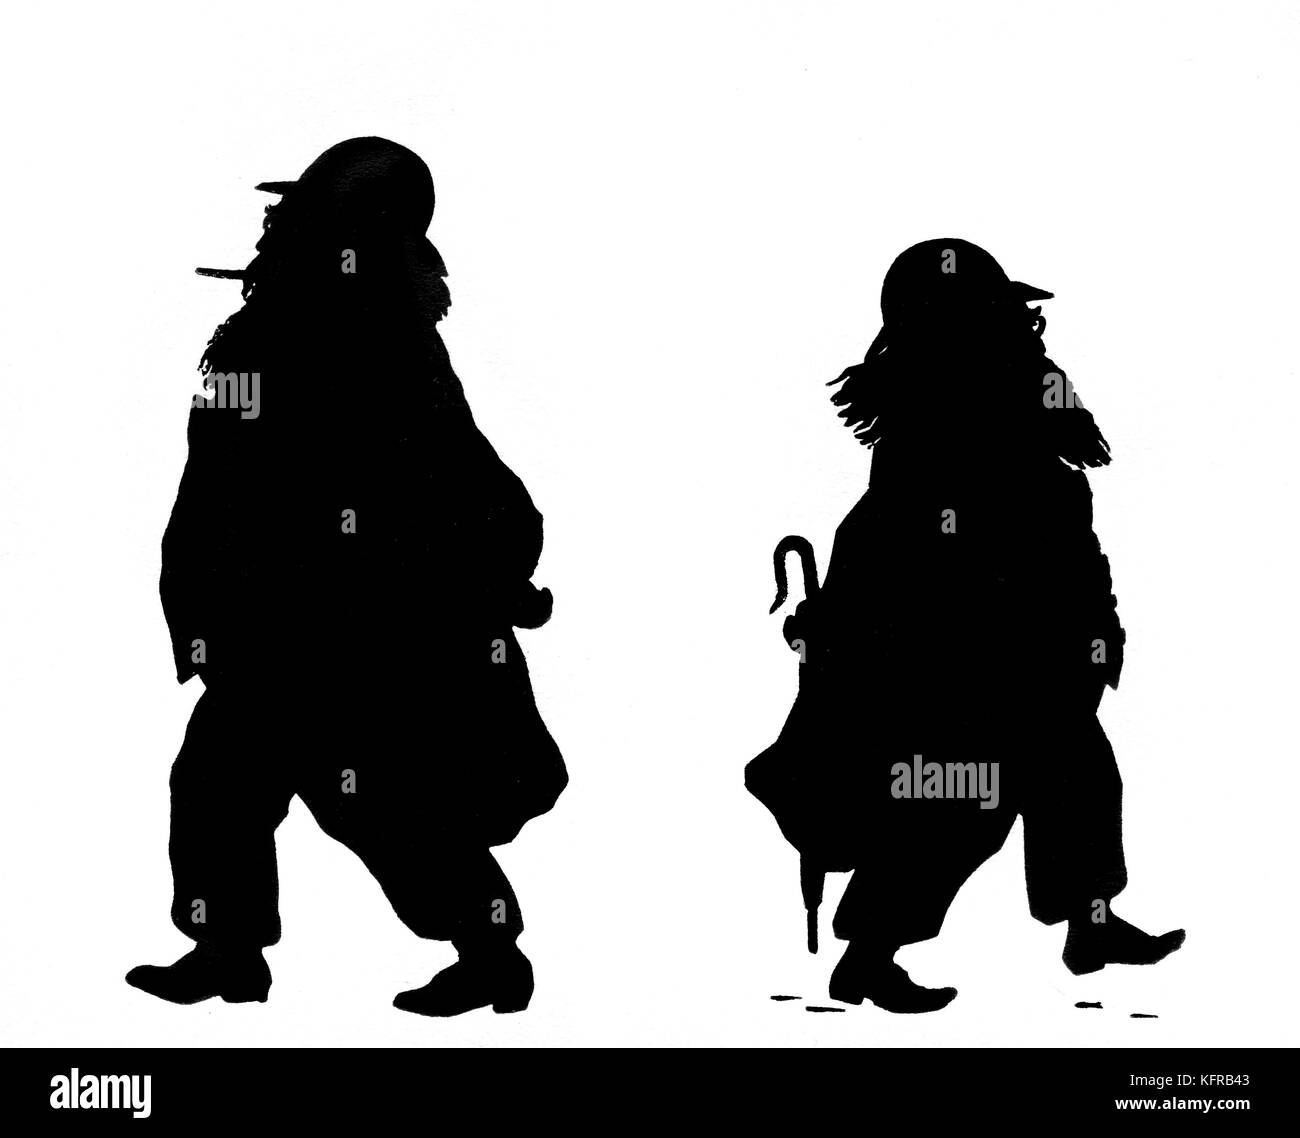 Johannes Brahms.   Caricature silhouette by Otto Bohler/ Boehler. German composer, 7 May 1833 - 3 April 1897 - Stock Image